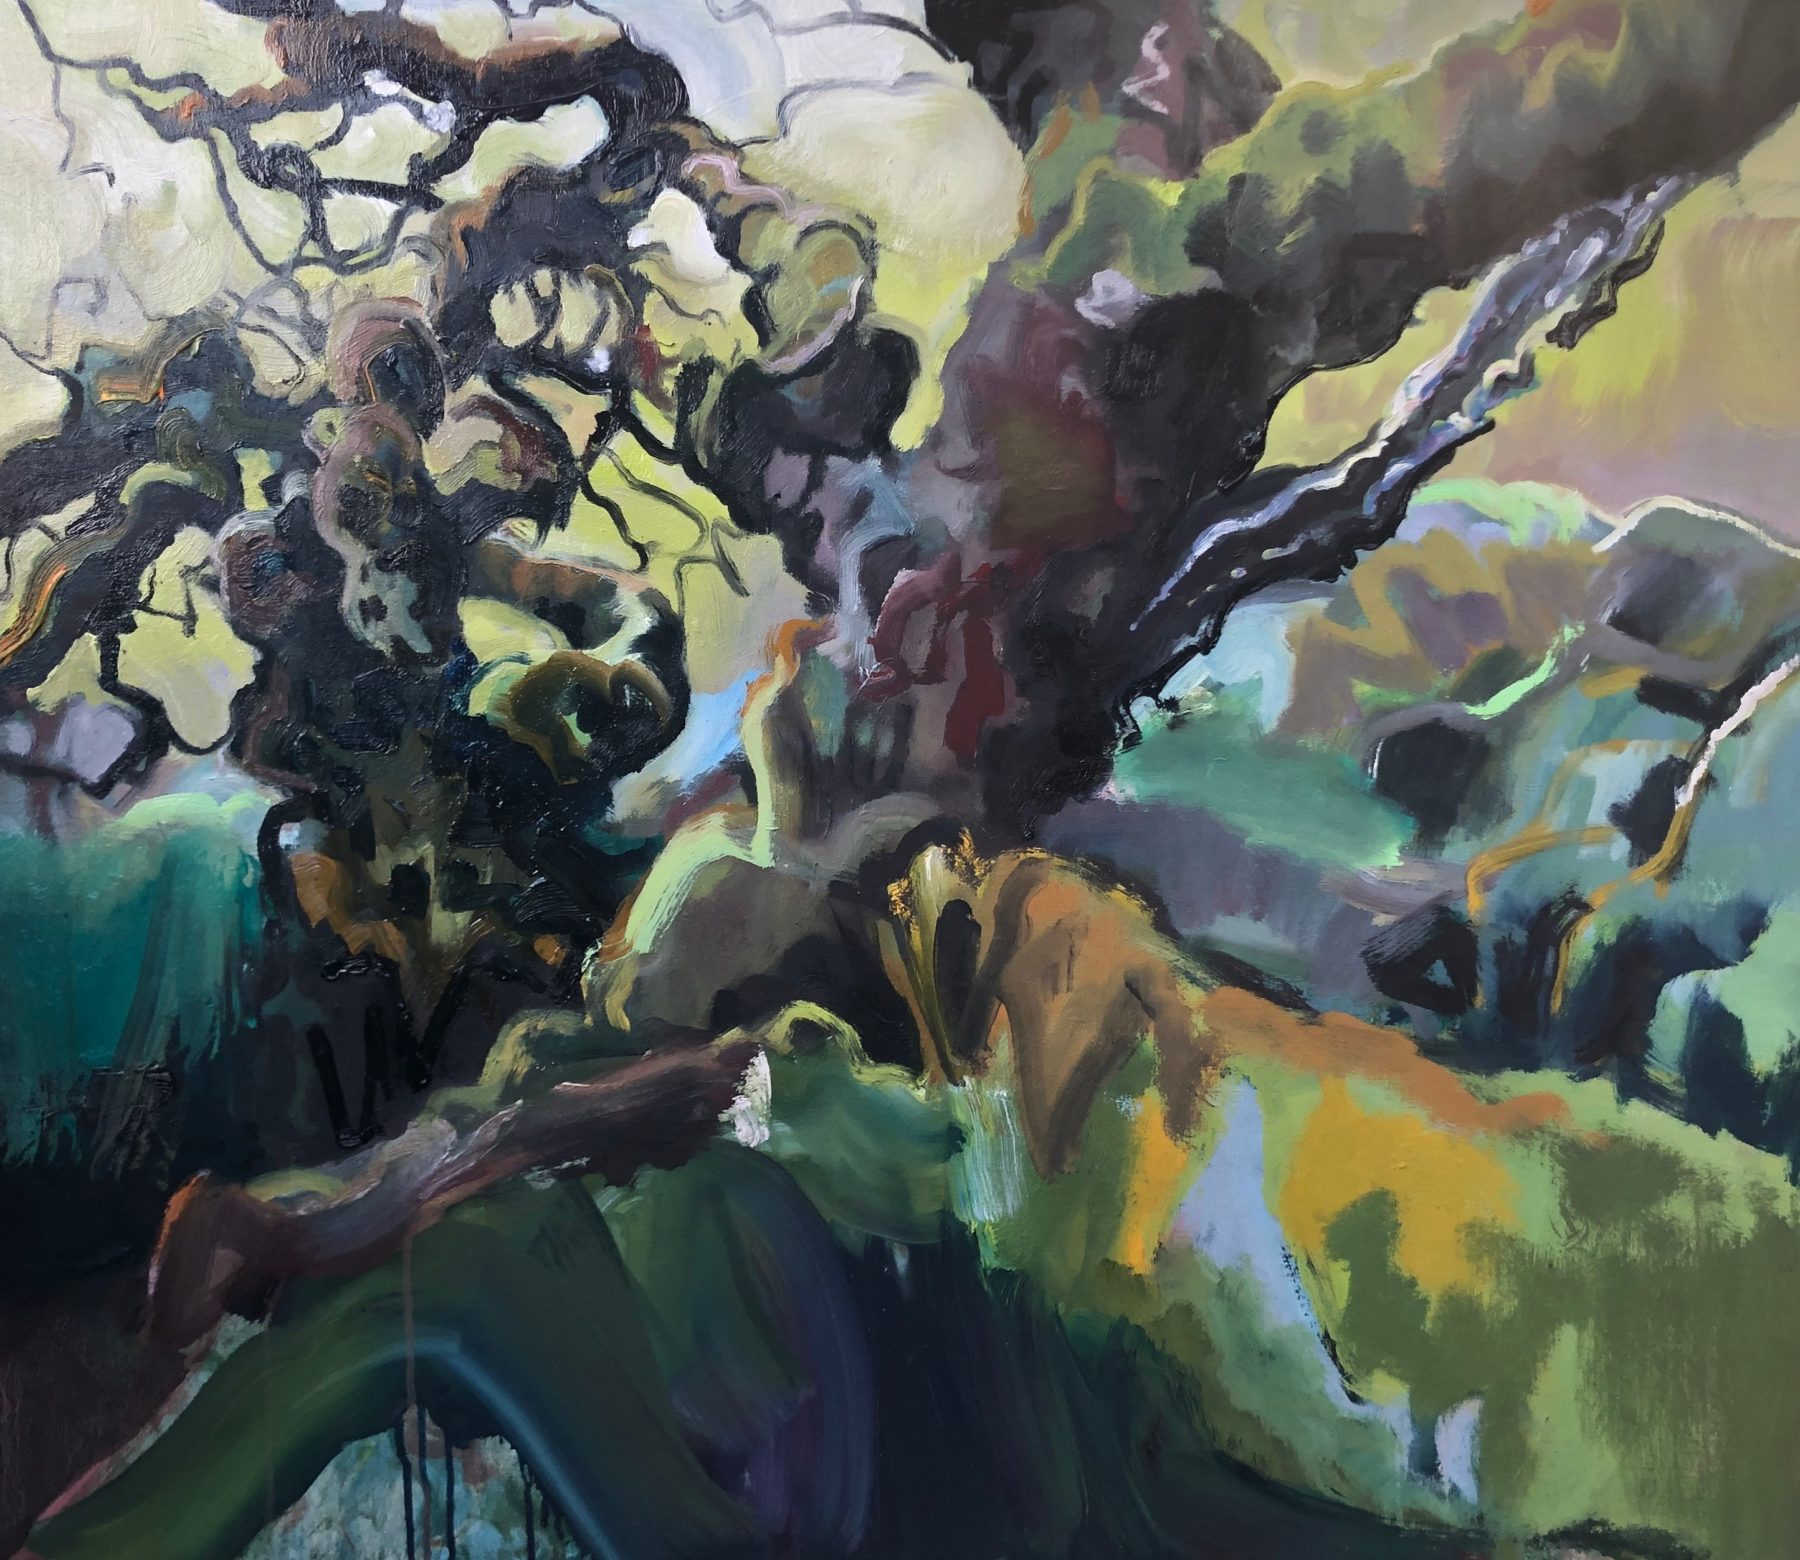 Gnarly tree branches are depicted with strong gestural brushmarks which give a sense of liveness. The abstract nature of the painting makes it difficult to differentiate from the foreground and the background, making it an artwork that immerses you in the atmosphere of the place. The colour palette consists of dark browns, blues and muddy yellows.